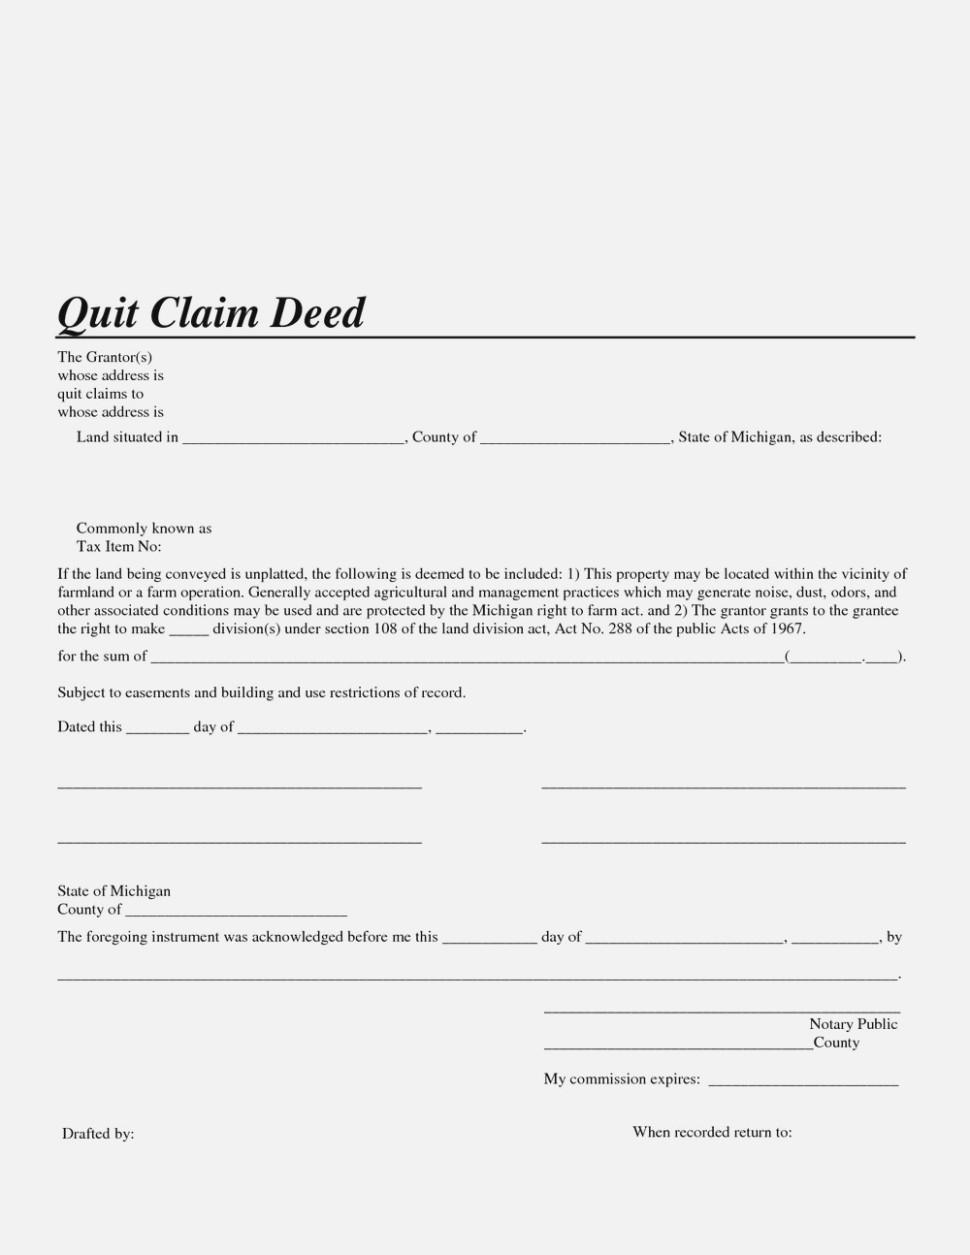 Michigan Quit Claim Deed Form Wayne County